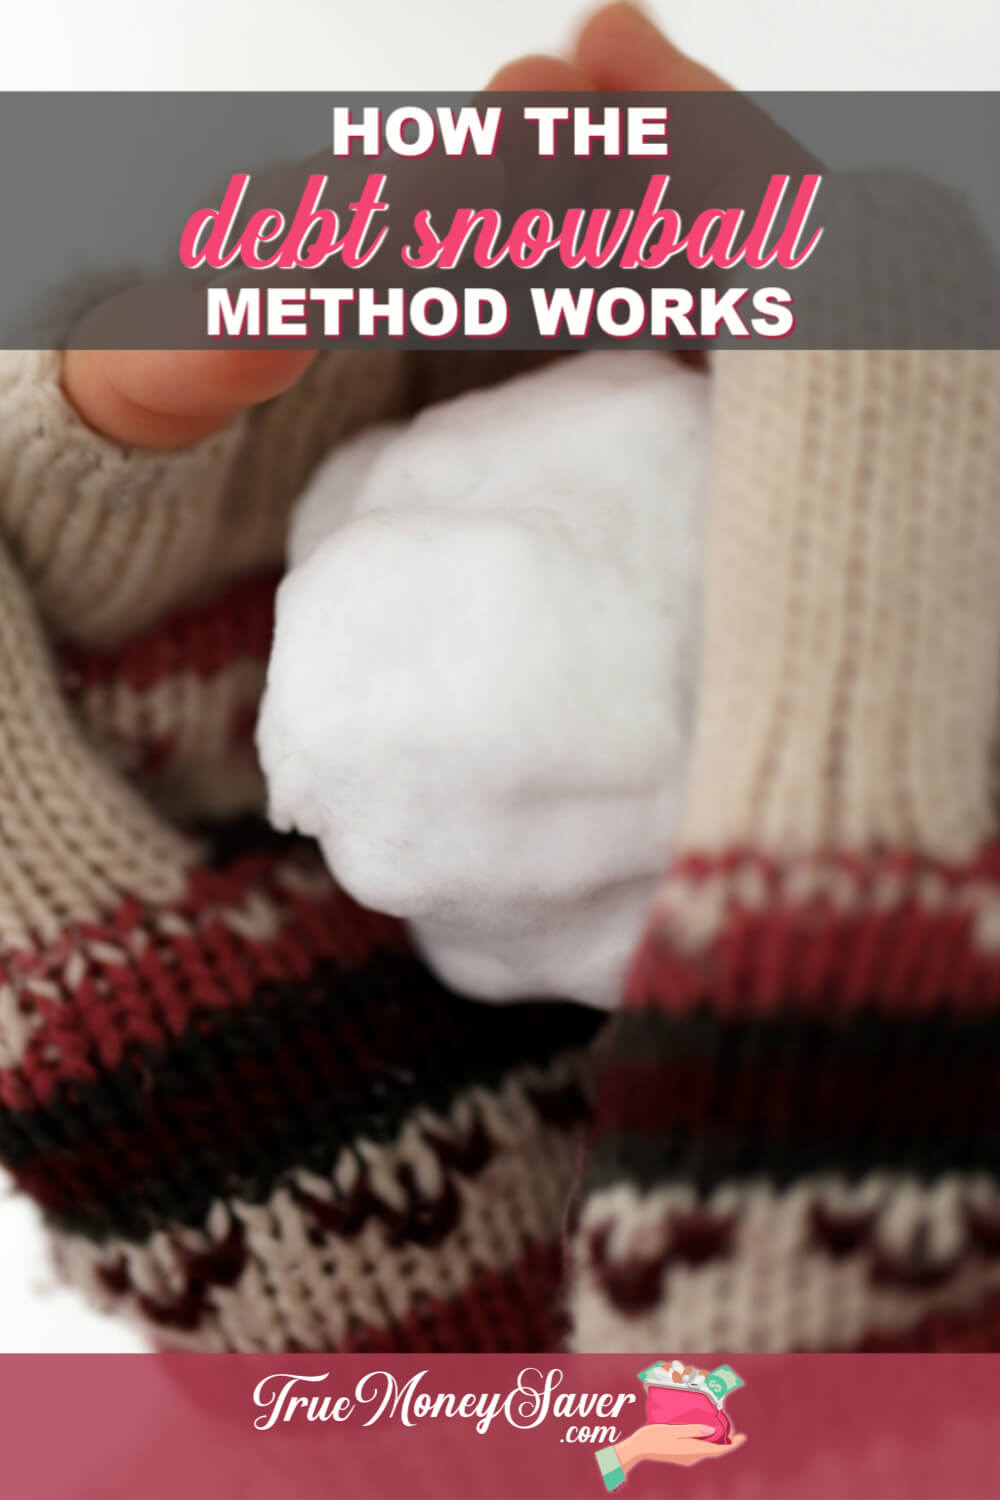 How The Debt Snowball Method Works